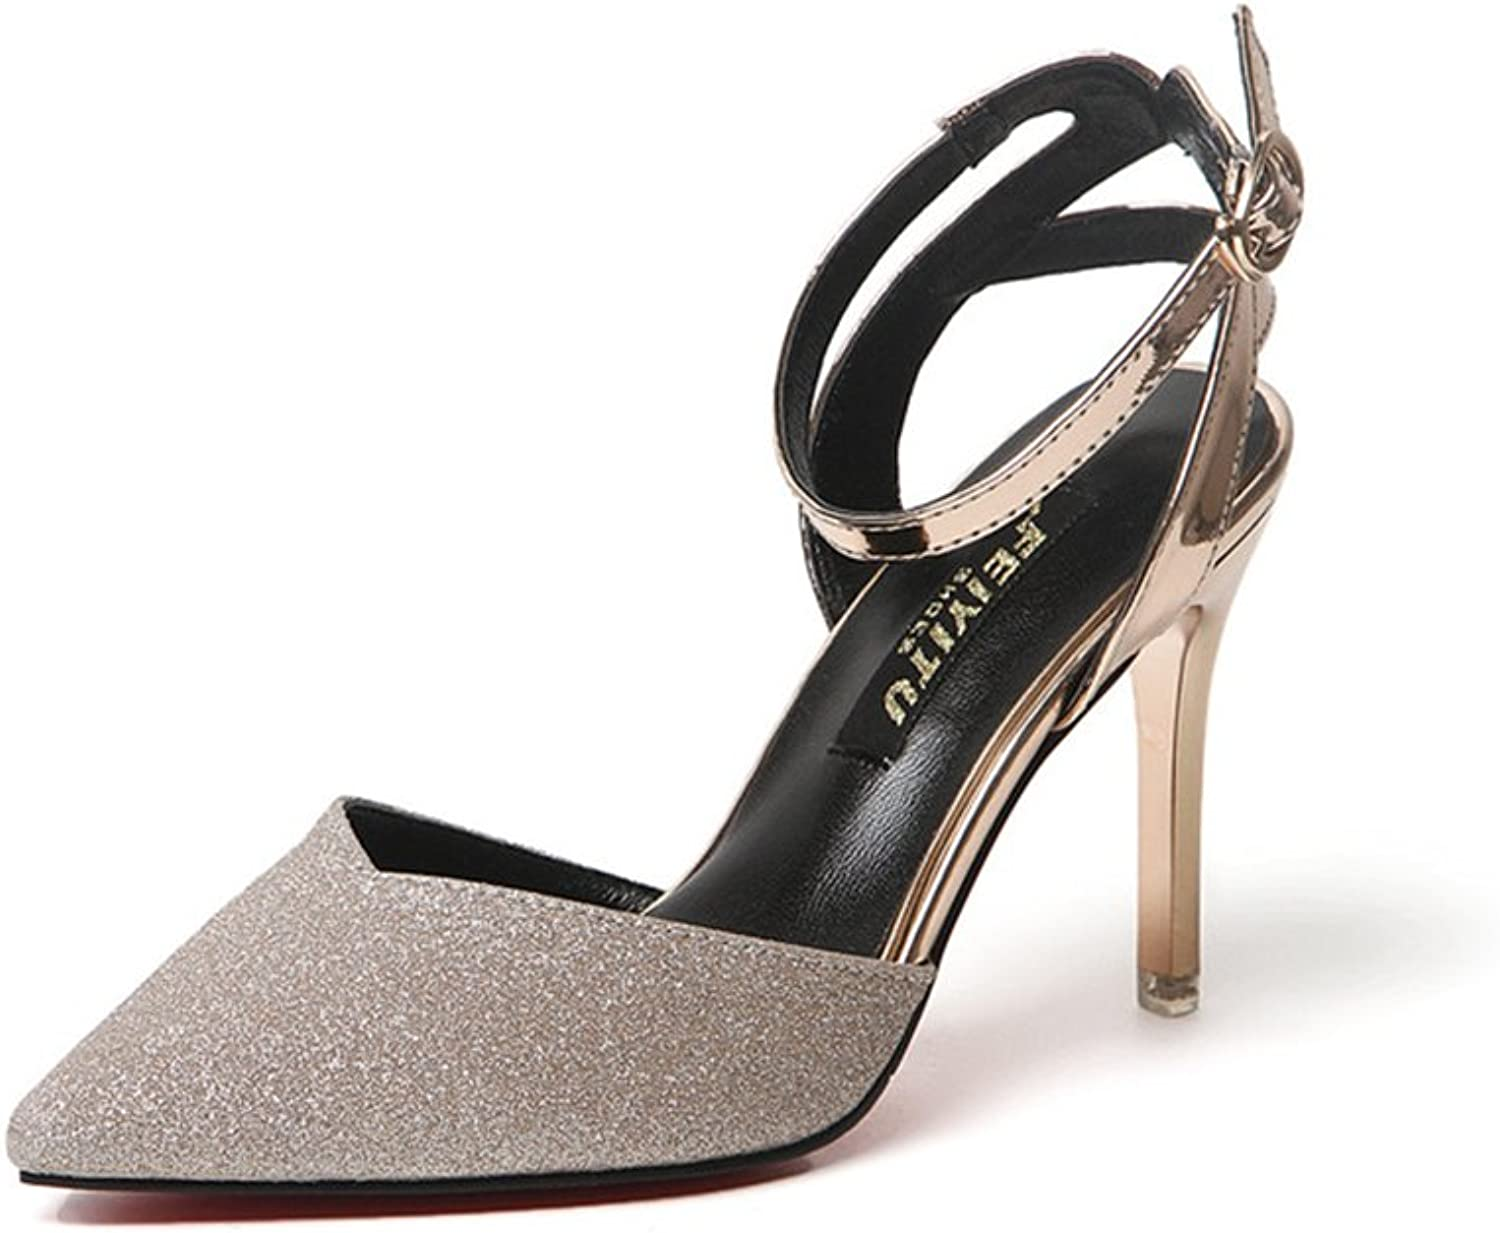 Women's Pointed Toe Pumps Office Business High Heels Sexy Stiletto shoes